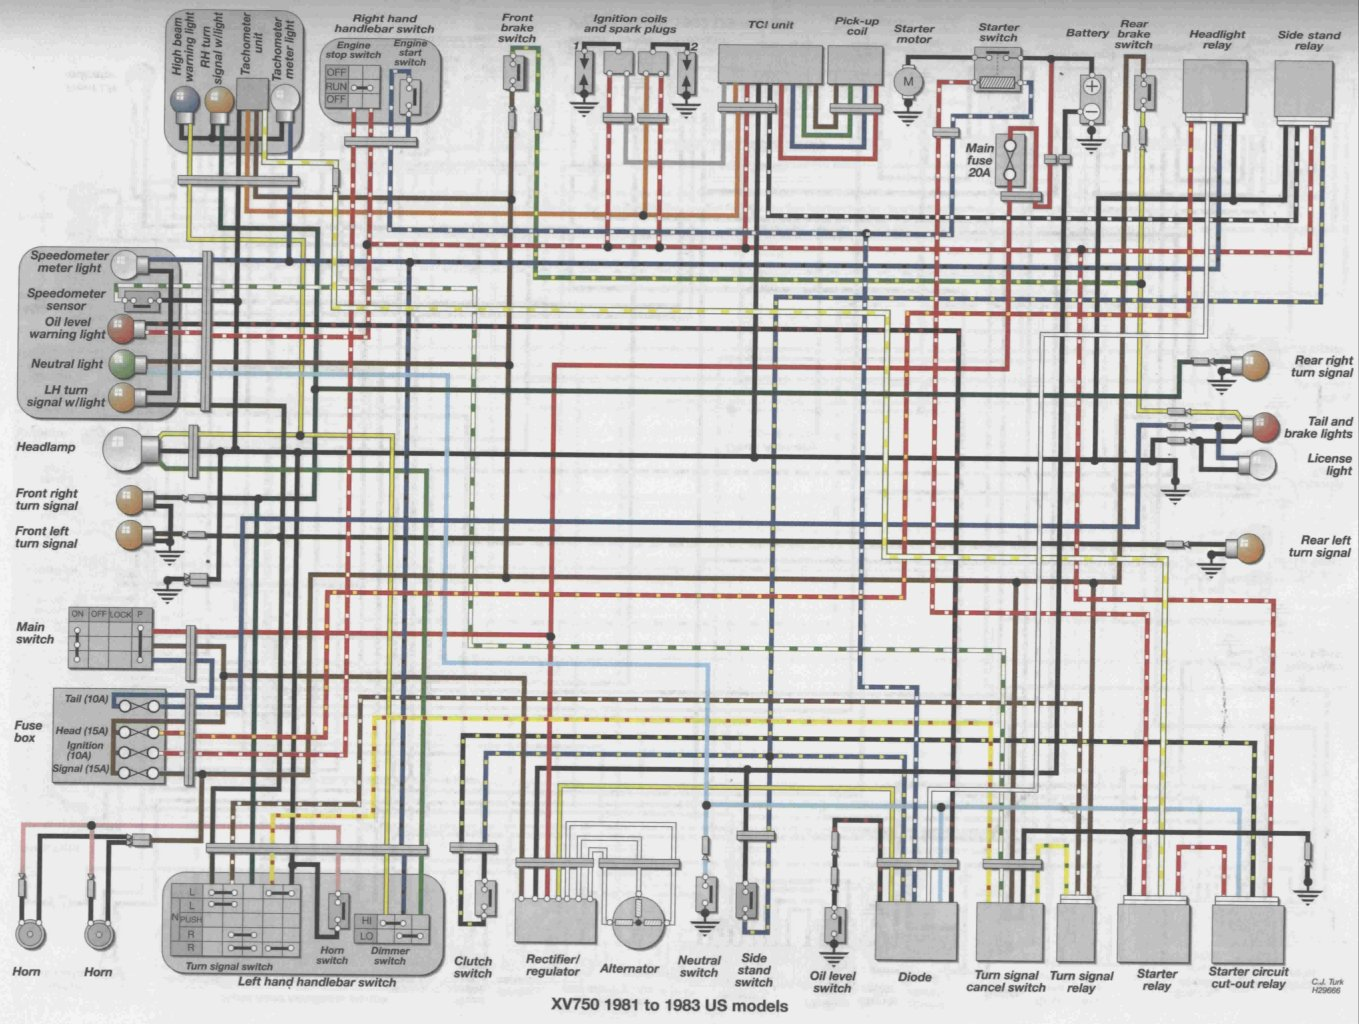 [DIAGRAM_5FD]  1994 Yamaha 750 Virago Wiring Diagram - Piping Instrumentation Diagram  Pictures for Wiring Diagram Schematics | Virago 750 Wiring Diagram |  | Wiring Diagram Schematics